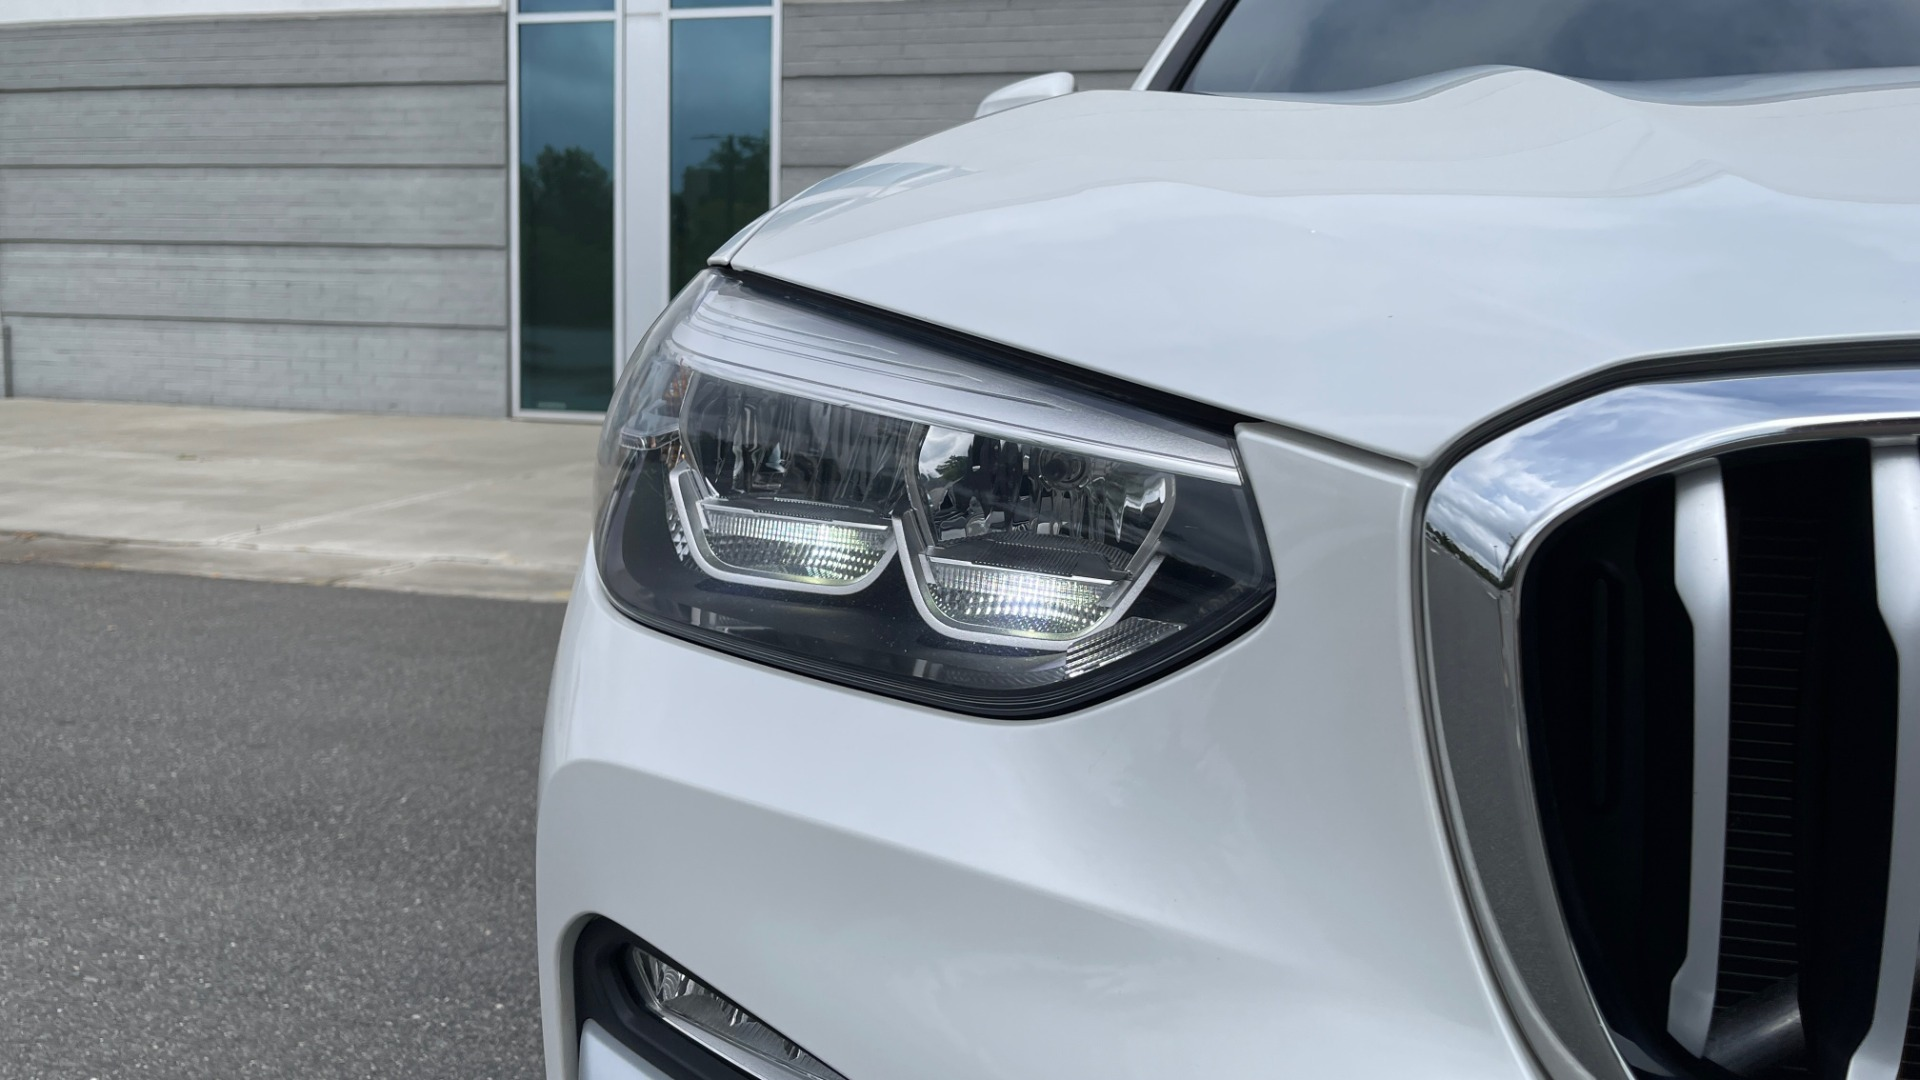 Used 2018 BMW X3 XDRIVE30I / NAV / PANO-ROOF / HTD STS / PARK DIST CNTRL / REARVIEW for sale $38,995 at Formula Imports in Charlotte NC 28227 12